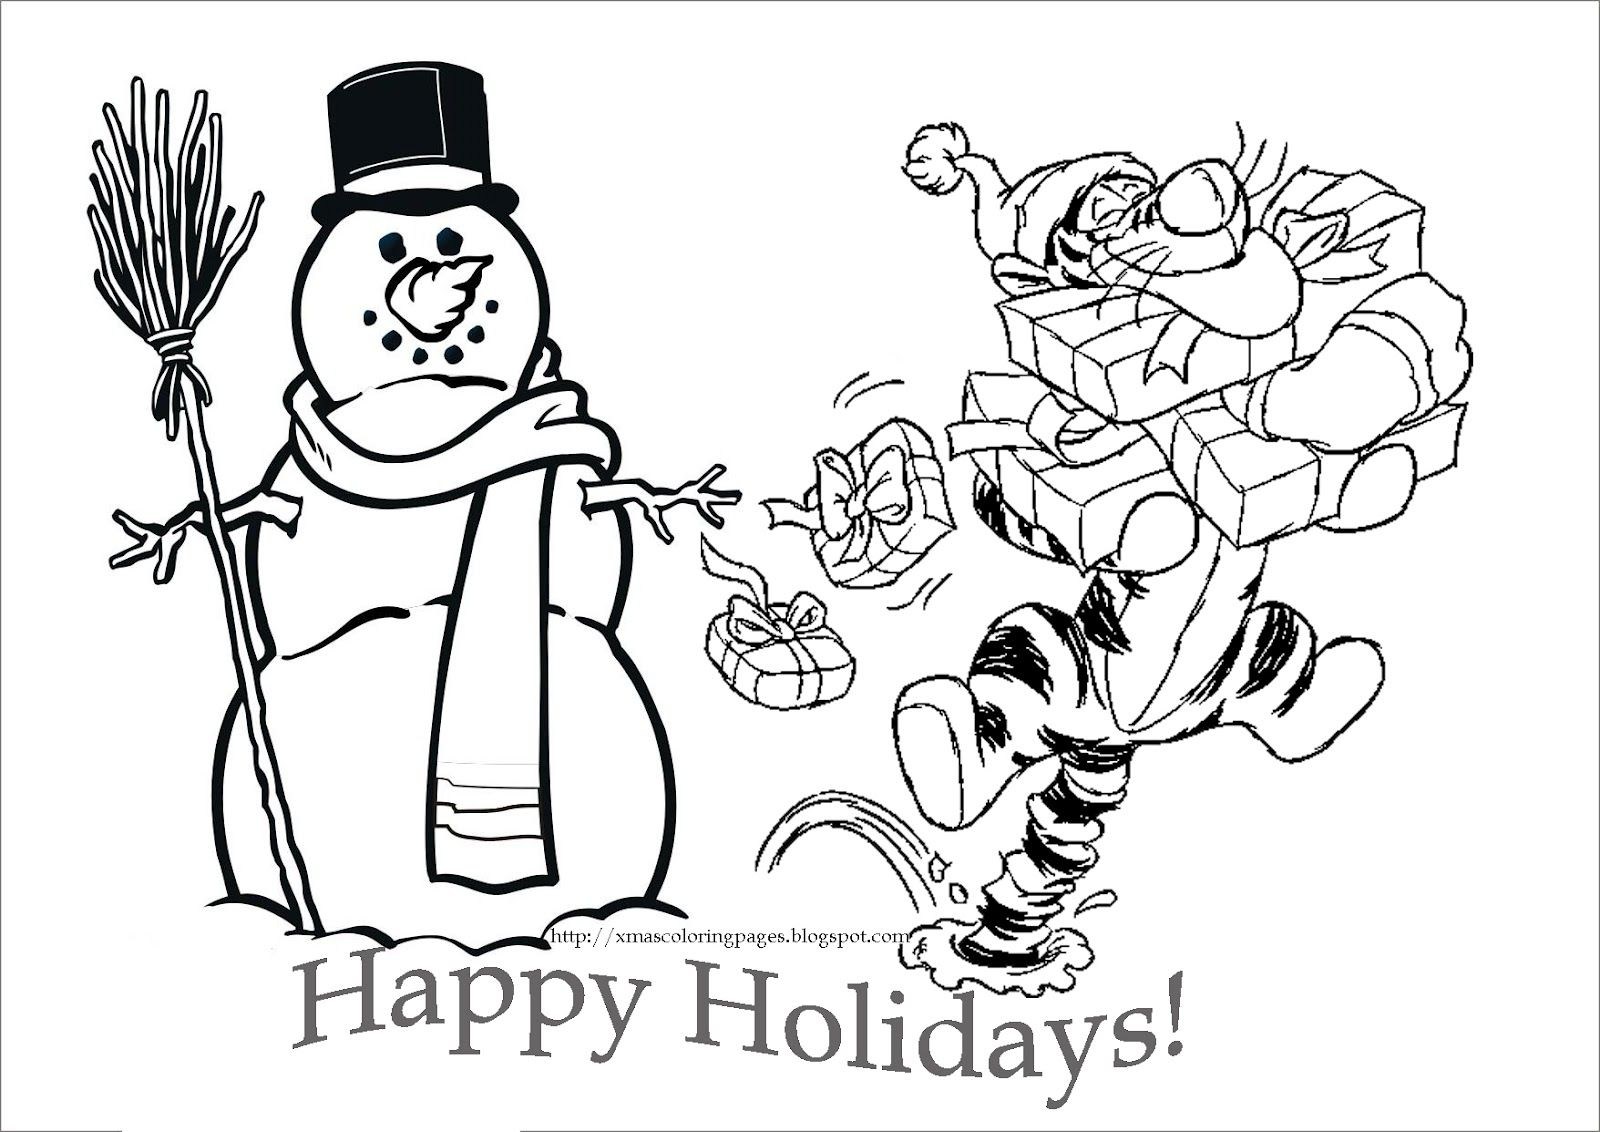 Snowman Tigger With Presents Happy Holidays Disney Coloring Pages Cute Coloring Pages Disney Princess Coloring Pages